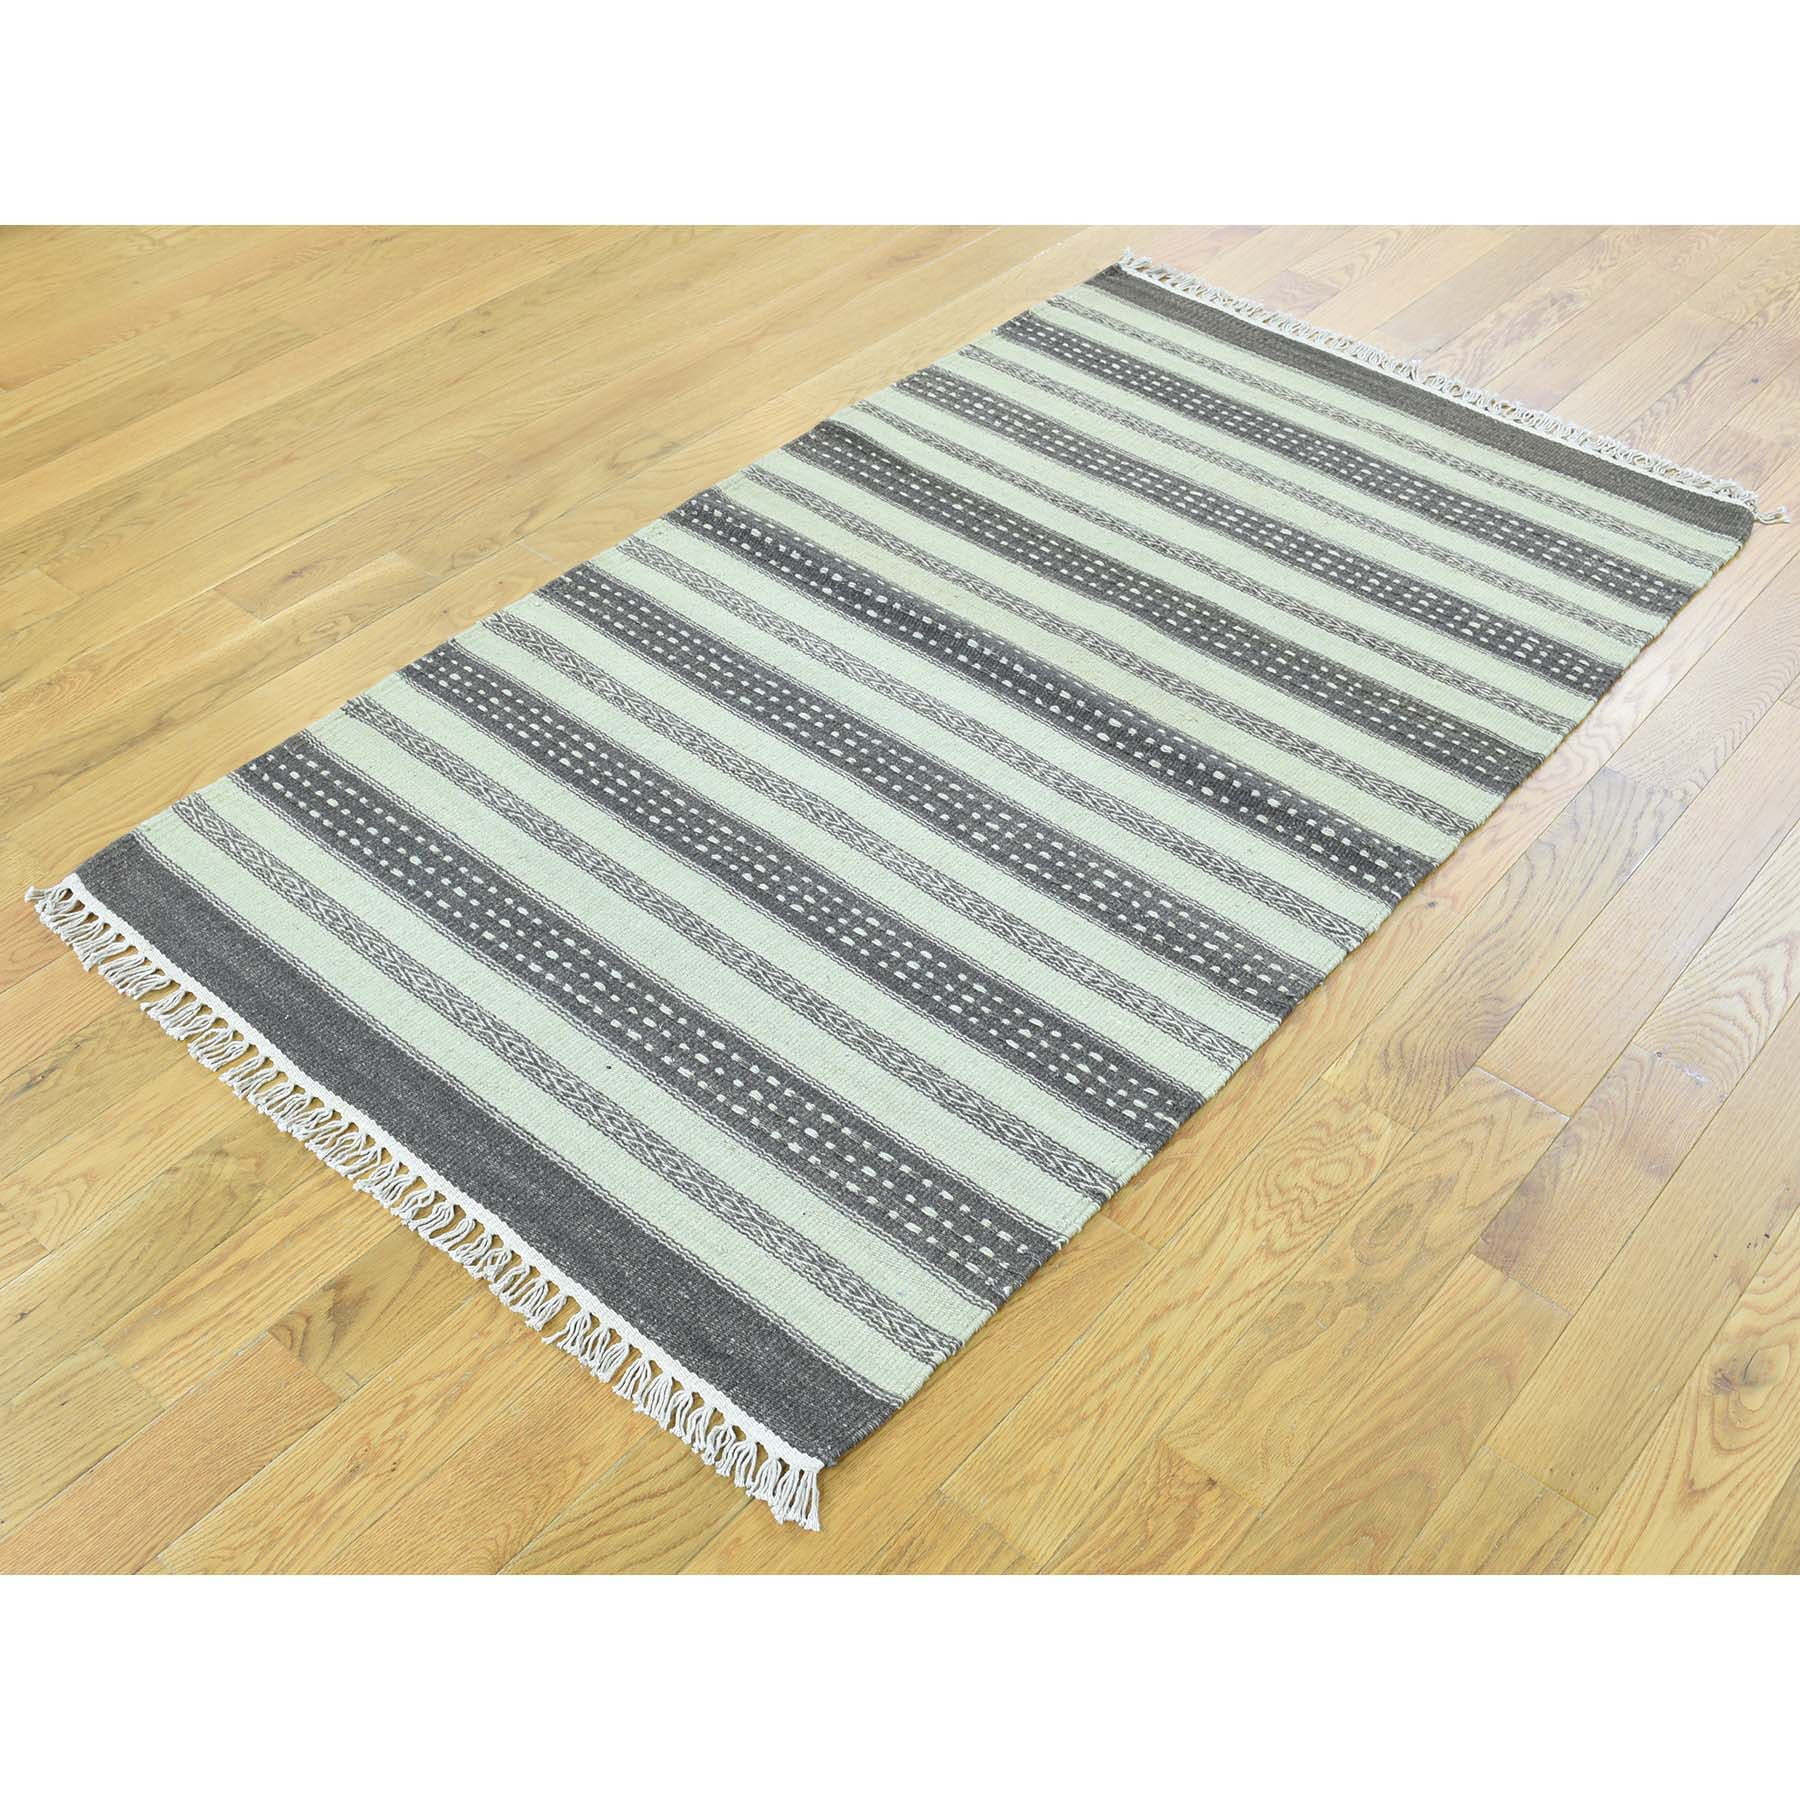 "Handmade Flat Weave Rectangle Rug > Design# SH31893 > Size: 2'-10"" x 4'-10"" [ONLINE ONLY]"